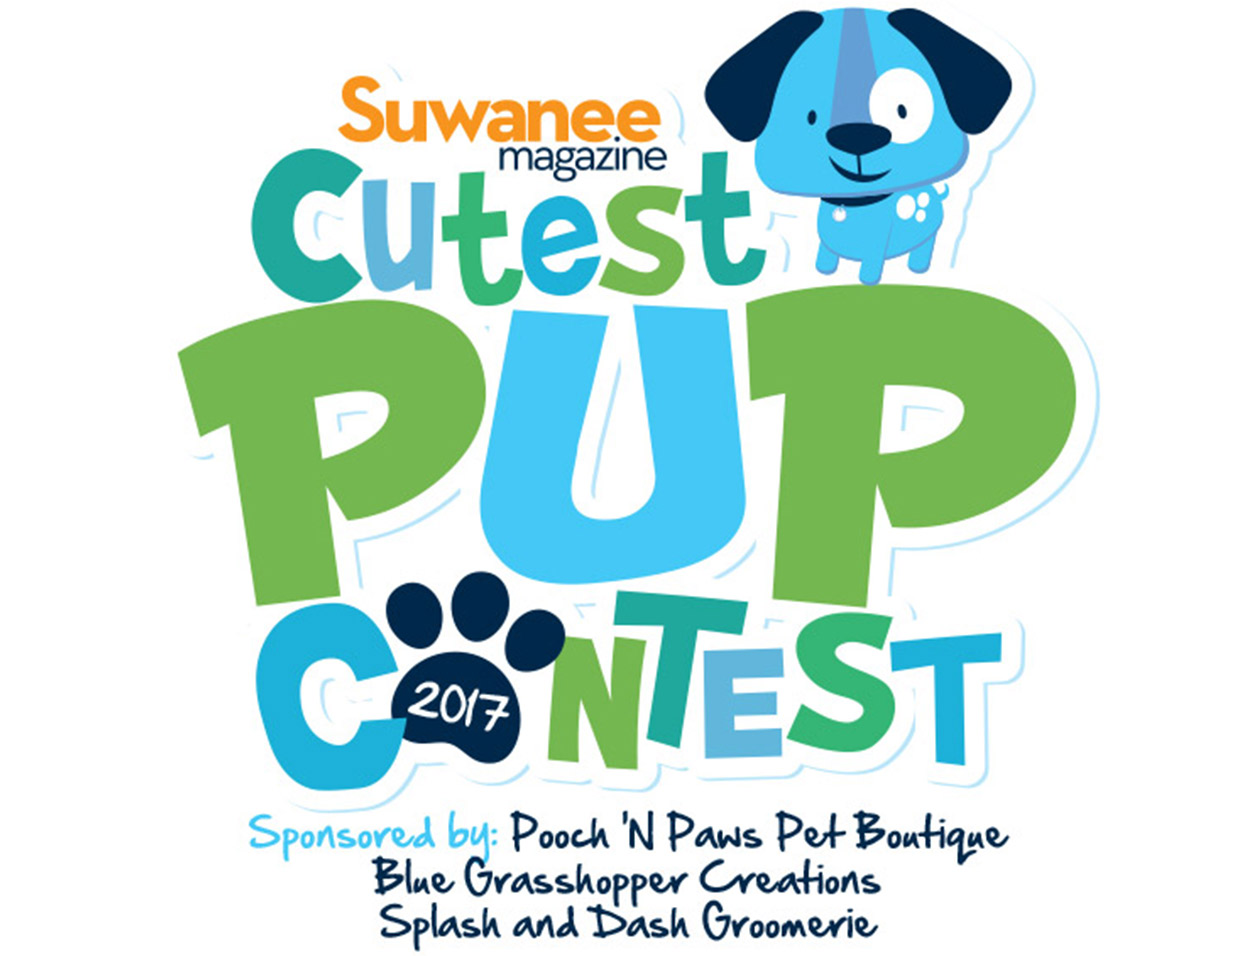 Suwanee Magazine Cutest Pup Contest